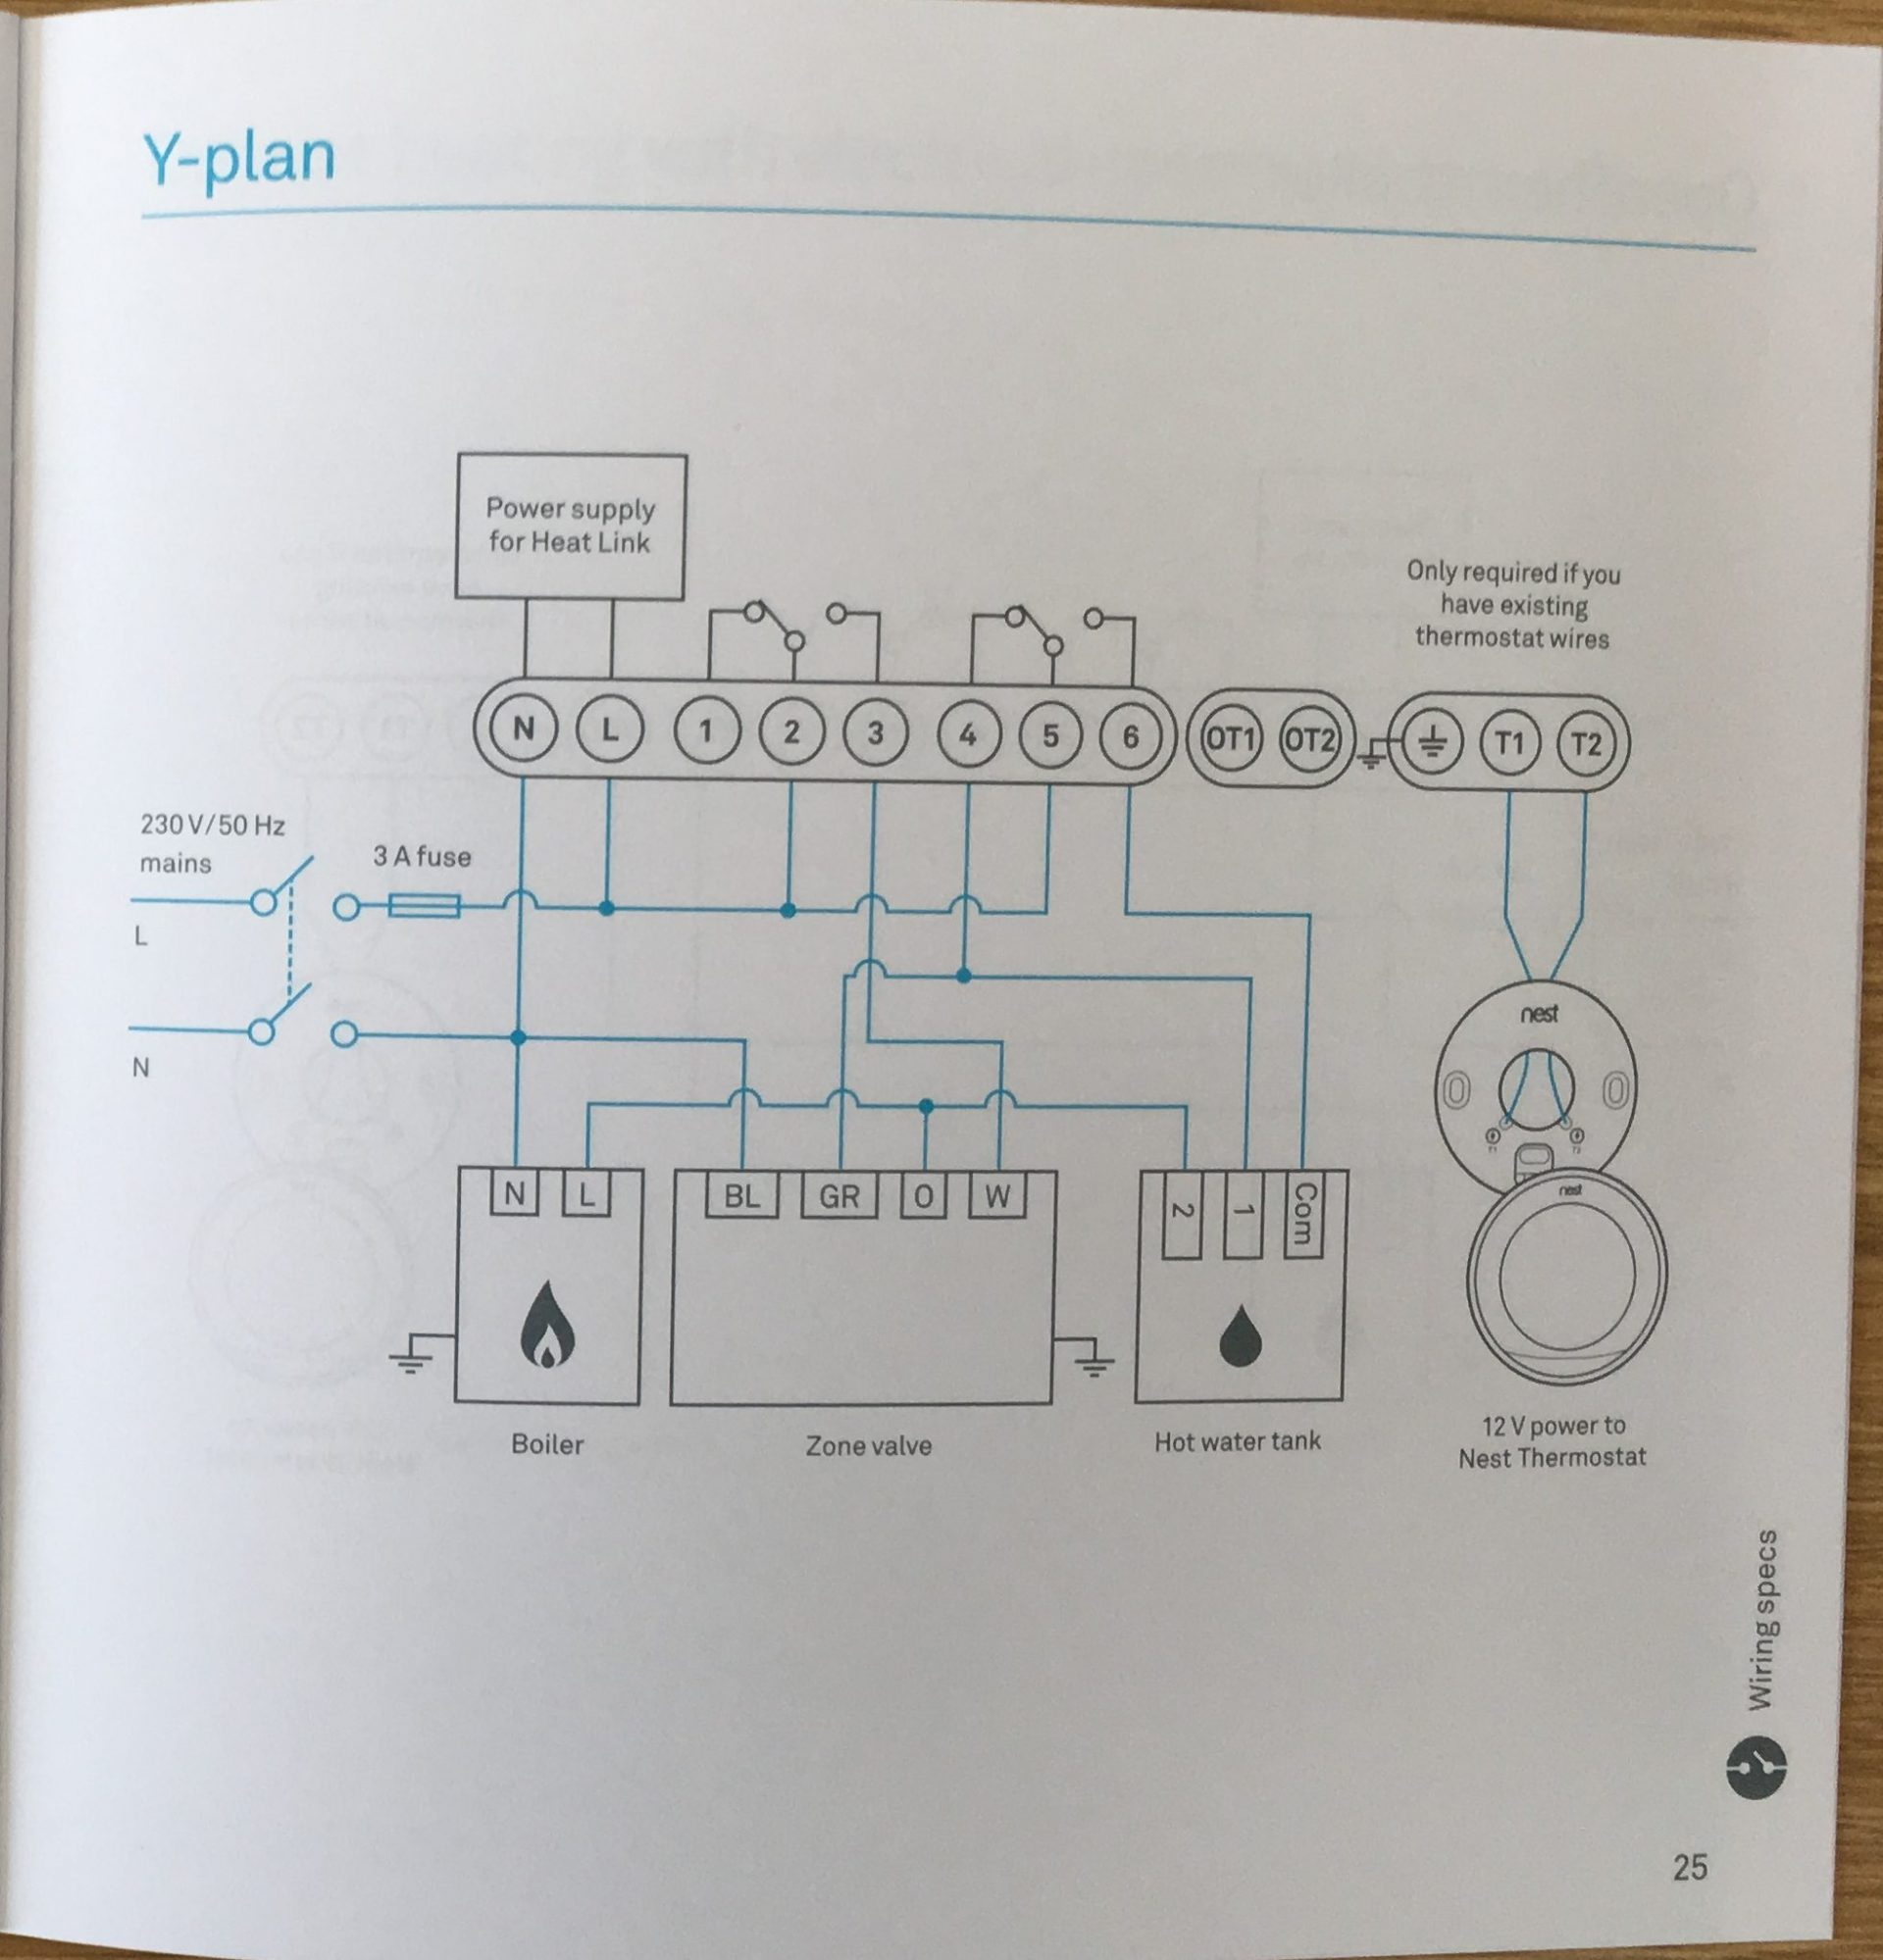 How To Install The Nest Learning Thermostat (3Rd Gen) In A Y-Plan - S Plan Wiring Diagram Nest